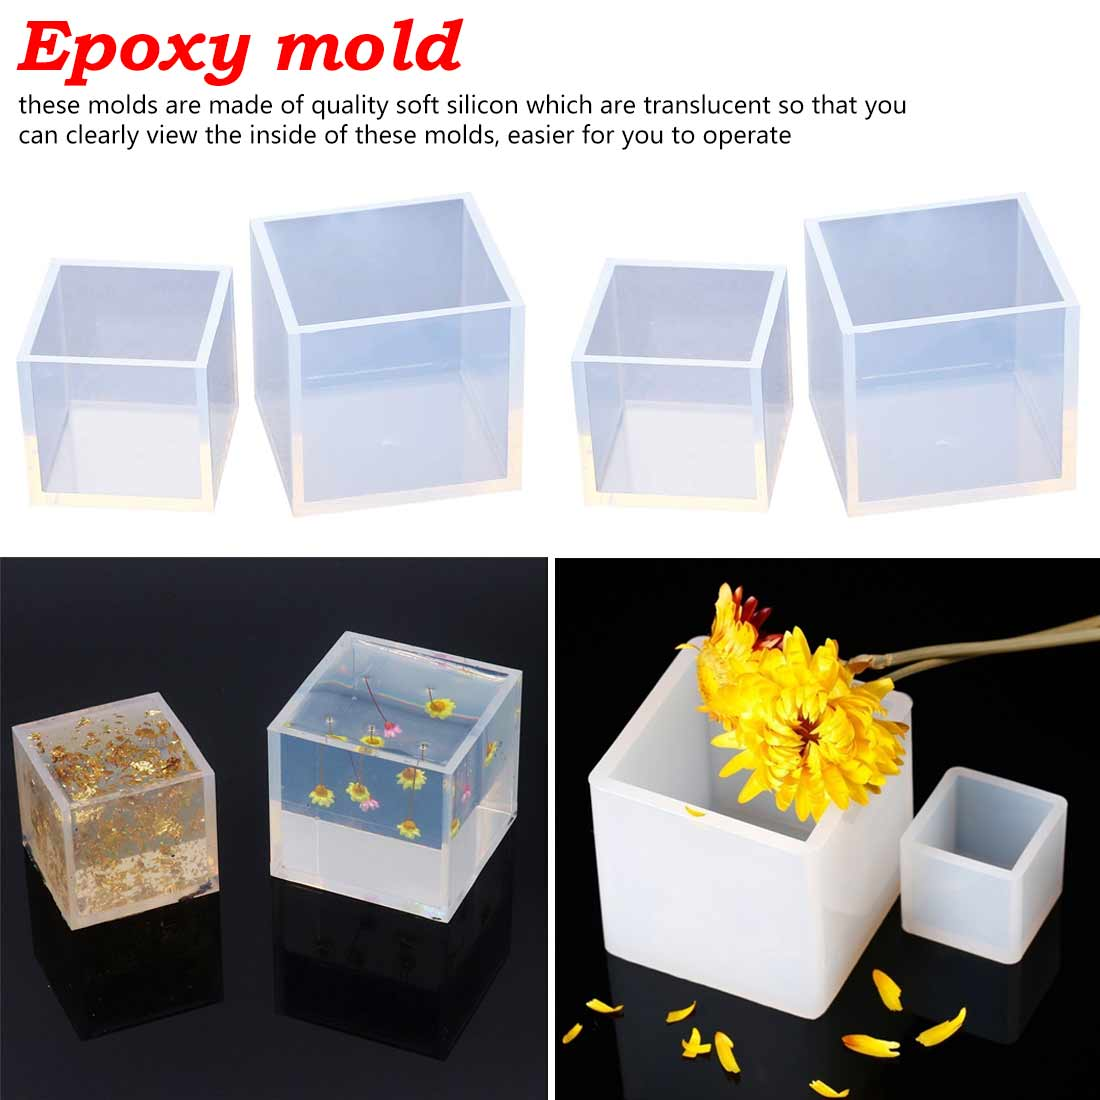 Resin Mold Cube Silicone Mold For DIY Craft For Polymer Clay Crafting Square Silicone Molds Resin Casting Molds